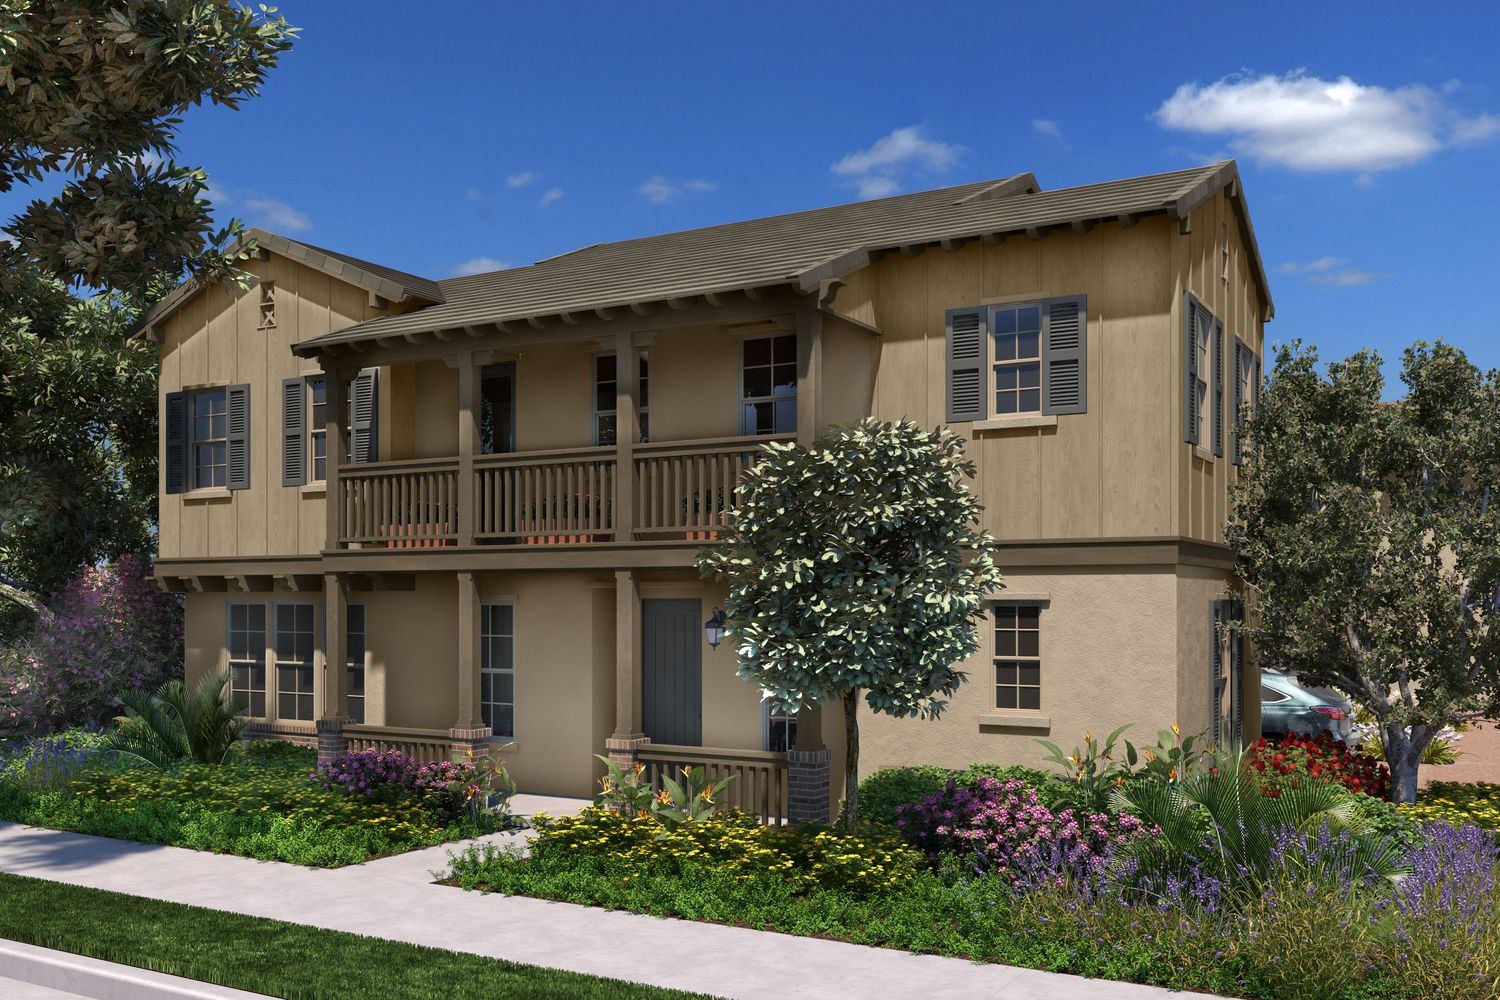 Single Family for Sale at Viva - Plan 3 181 Stonegate Road Camarillo, California 93010 United States